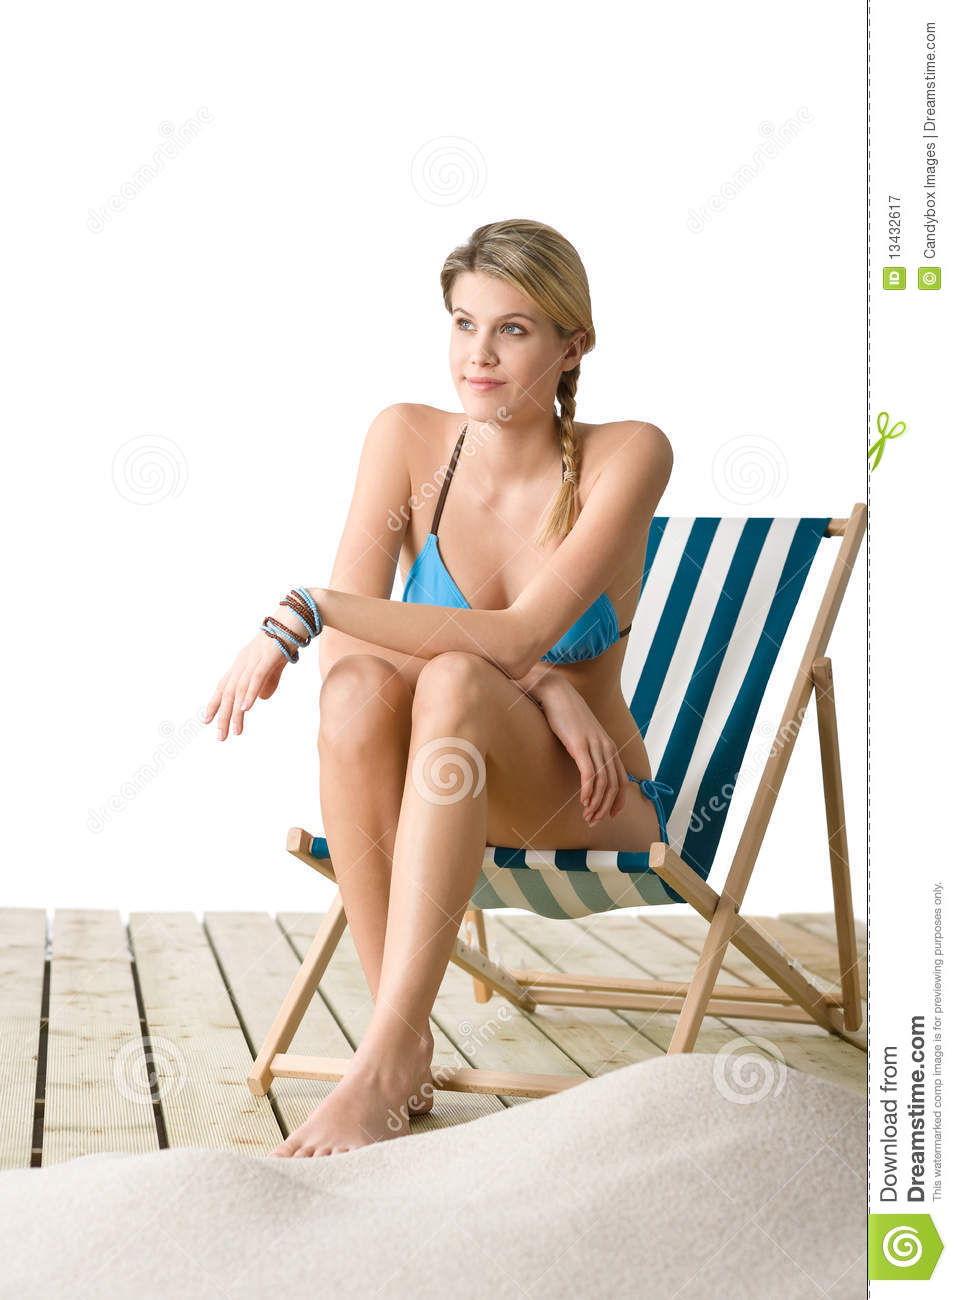 stock images of ` Beach - woman in bikini sitting on deck chair